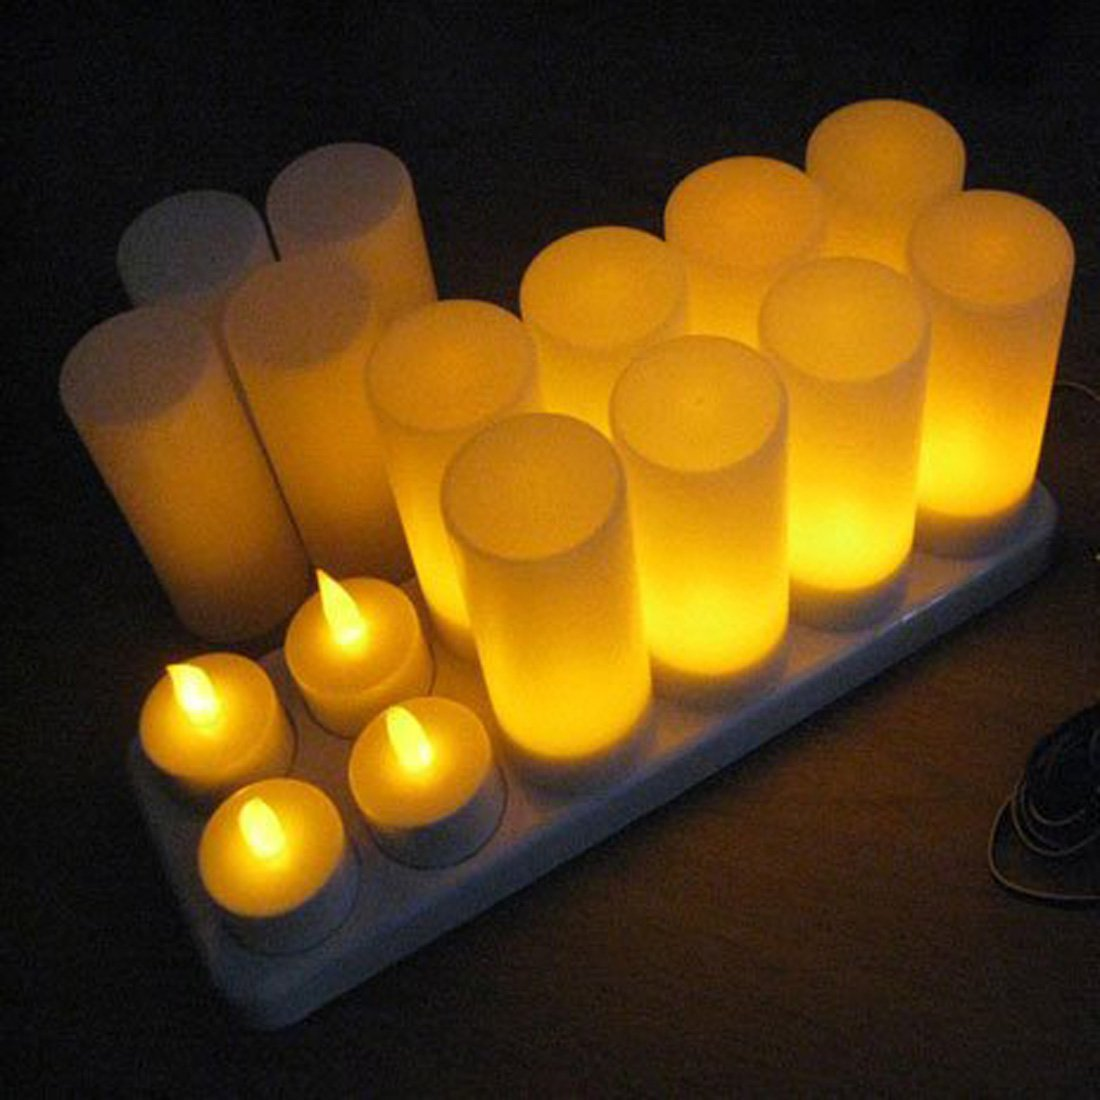 Winterworm Rechargeable Flameless Yellow Flickering Tea Light Candle with Frosted Holder for Xmas Party Wedding Festival Holiday Party Decoration Supplies (Set of 12, With Remote Control) by Winterworm (Image #1)